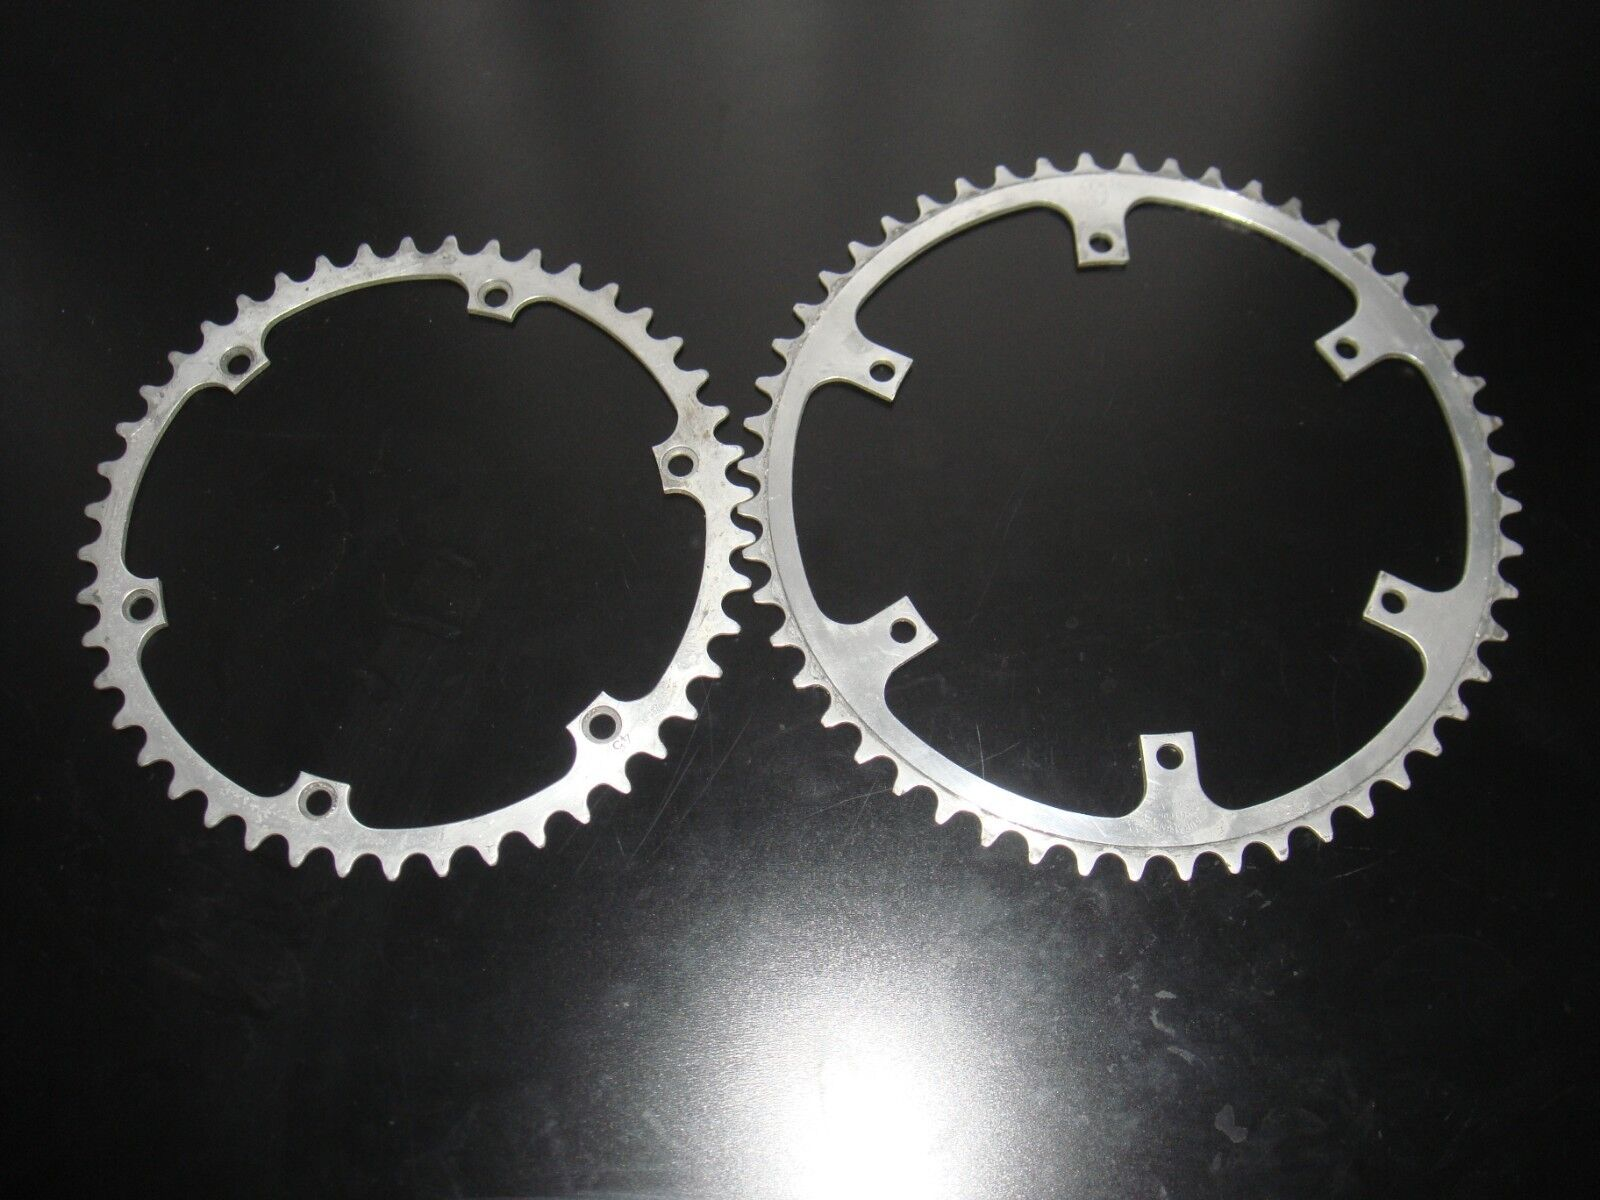 Set of specialité t.a chainrings duralumin cegedur 45 52 teeths for adaptator